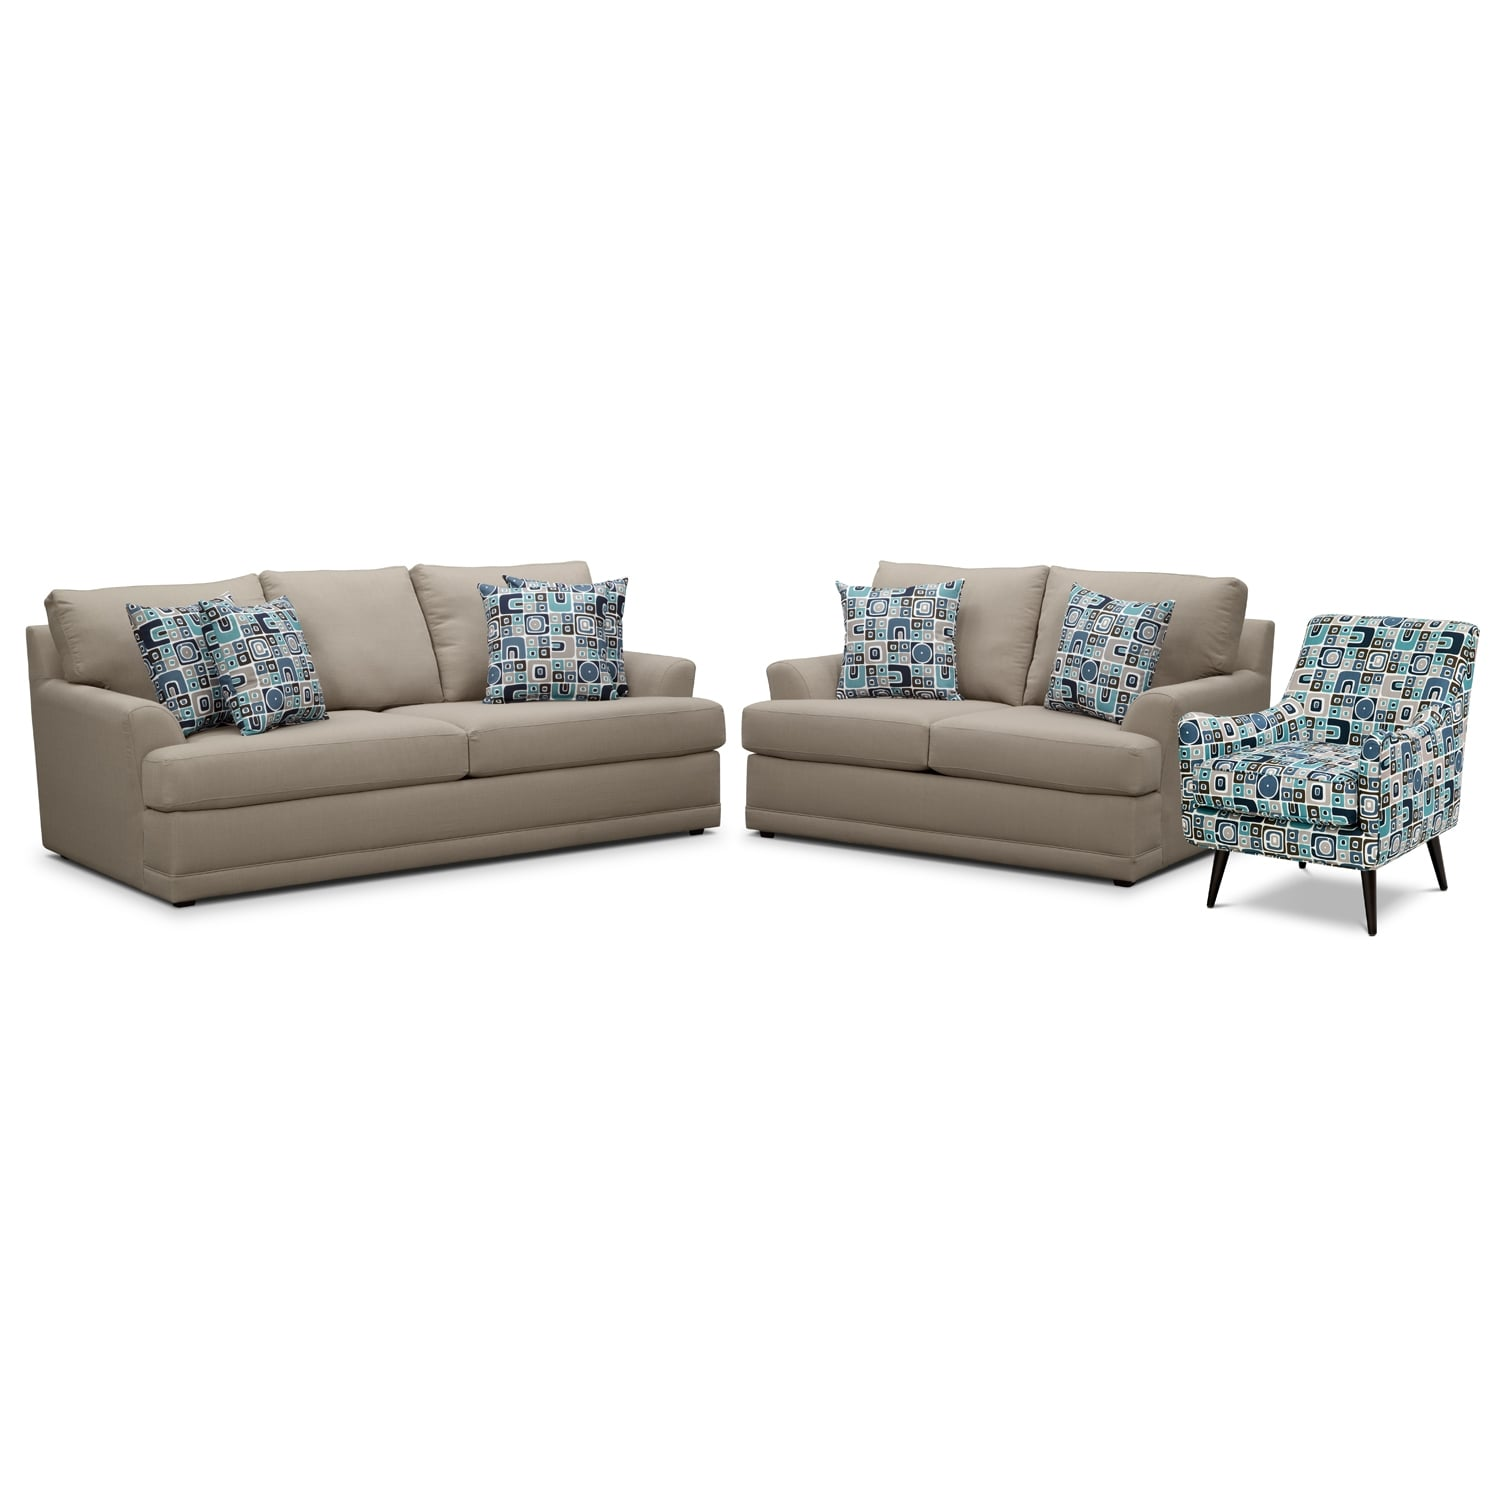 Living Room Furniture - Kismet II 3 Pc. Living Room w/ Accent Chair